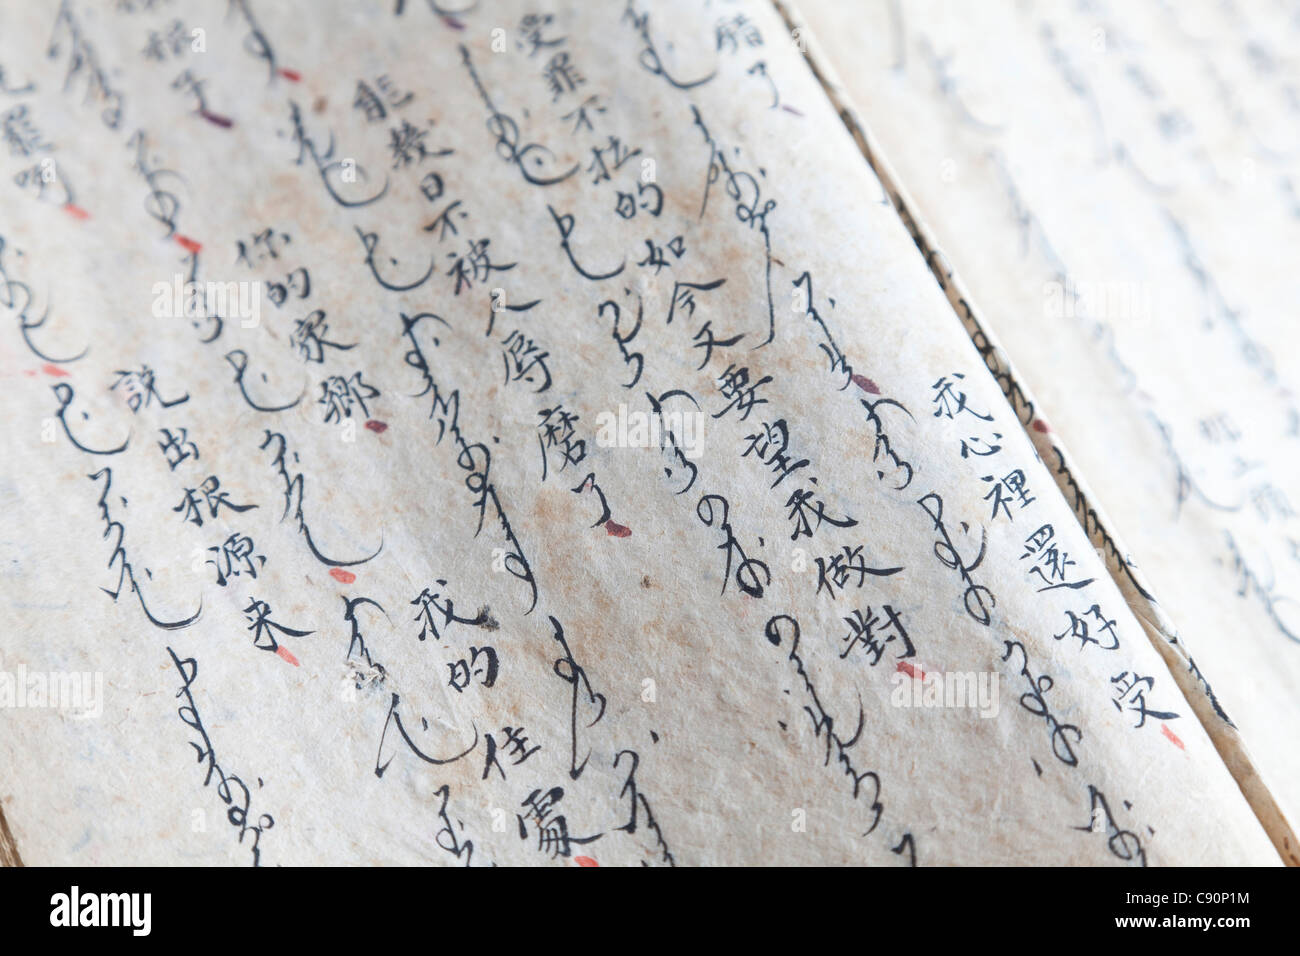 Parchment with Manchu-Chinese text, Qing dynasty, Leipzig, Saxony, Germany - Stock Image